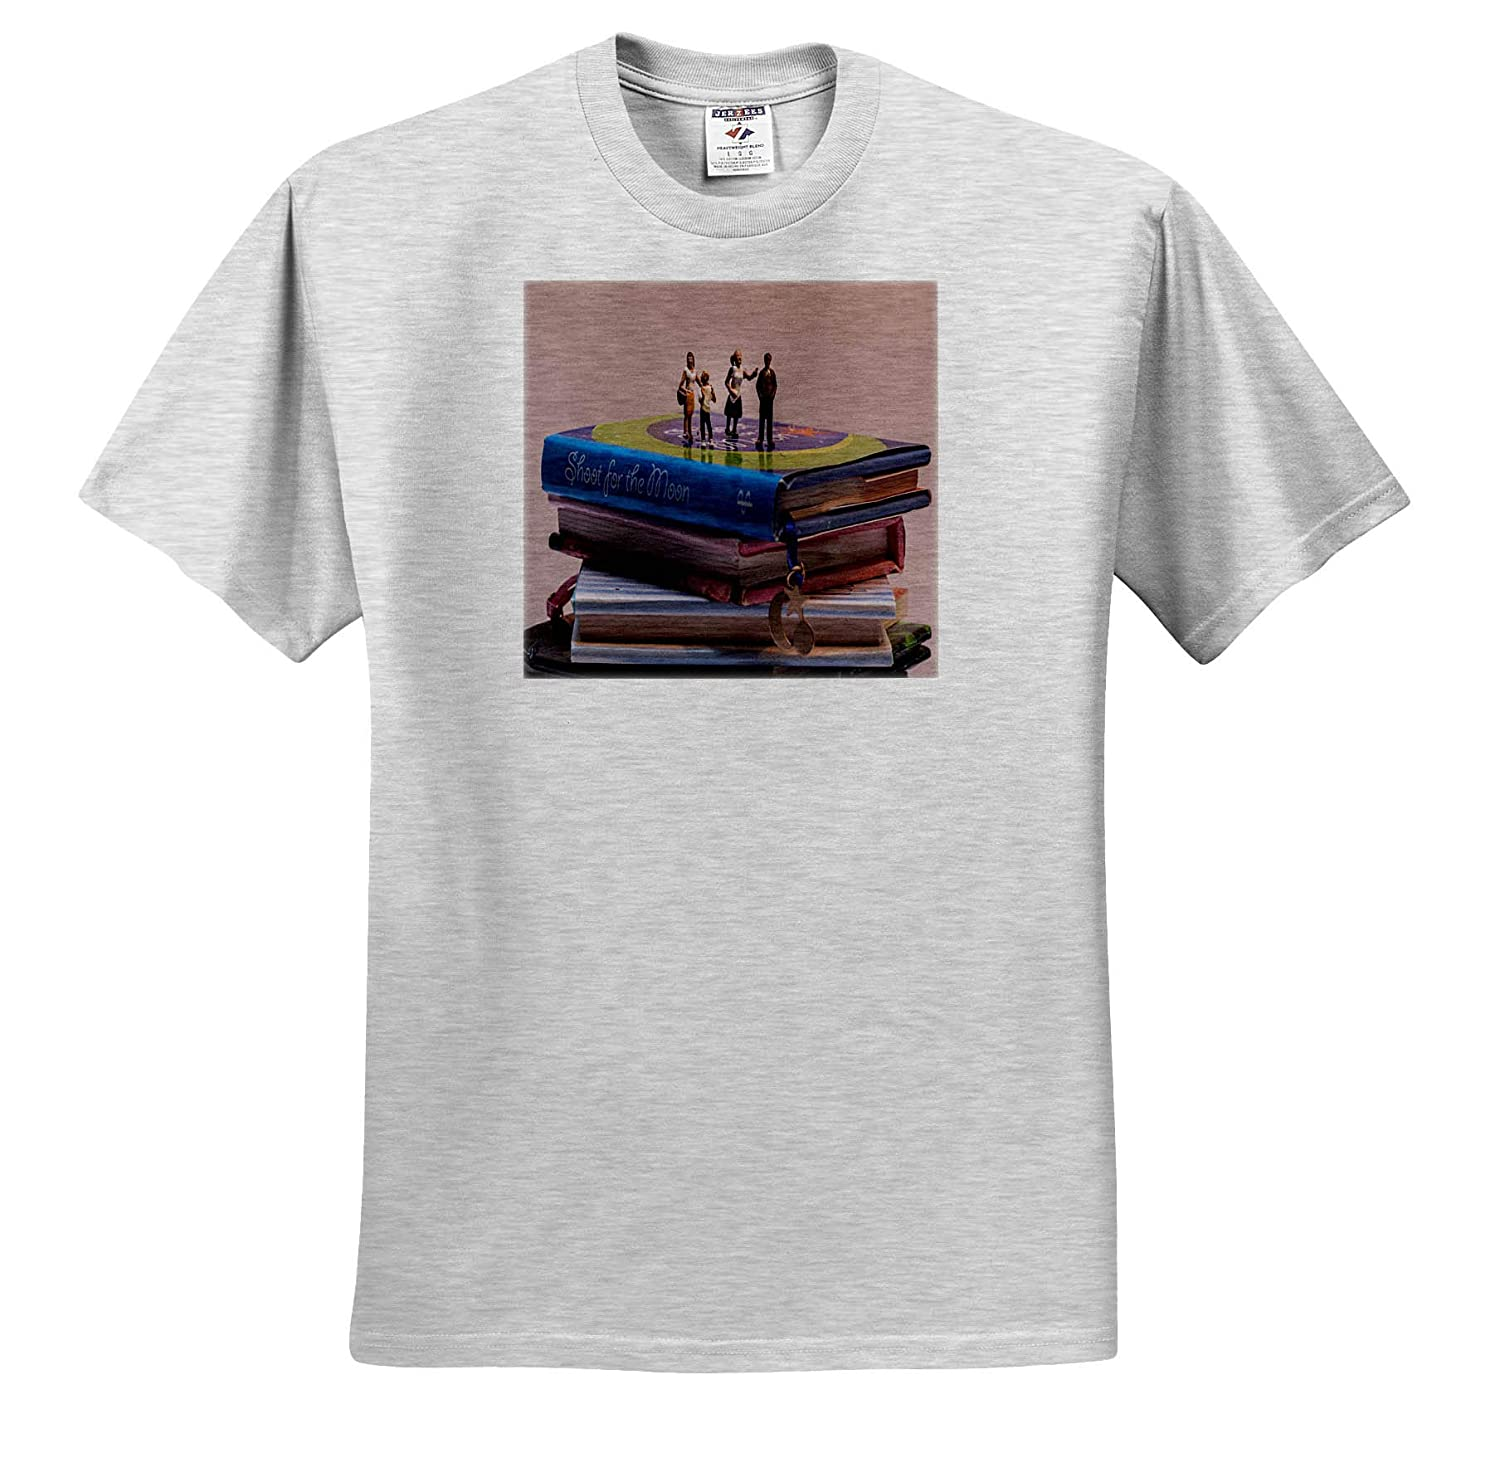 Little People on Books T-Shirts 3dRose Roni Chastain Photography